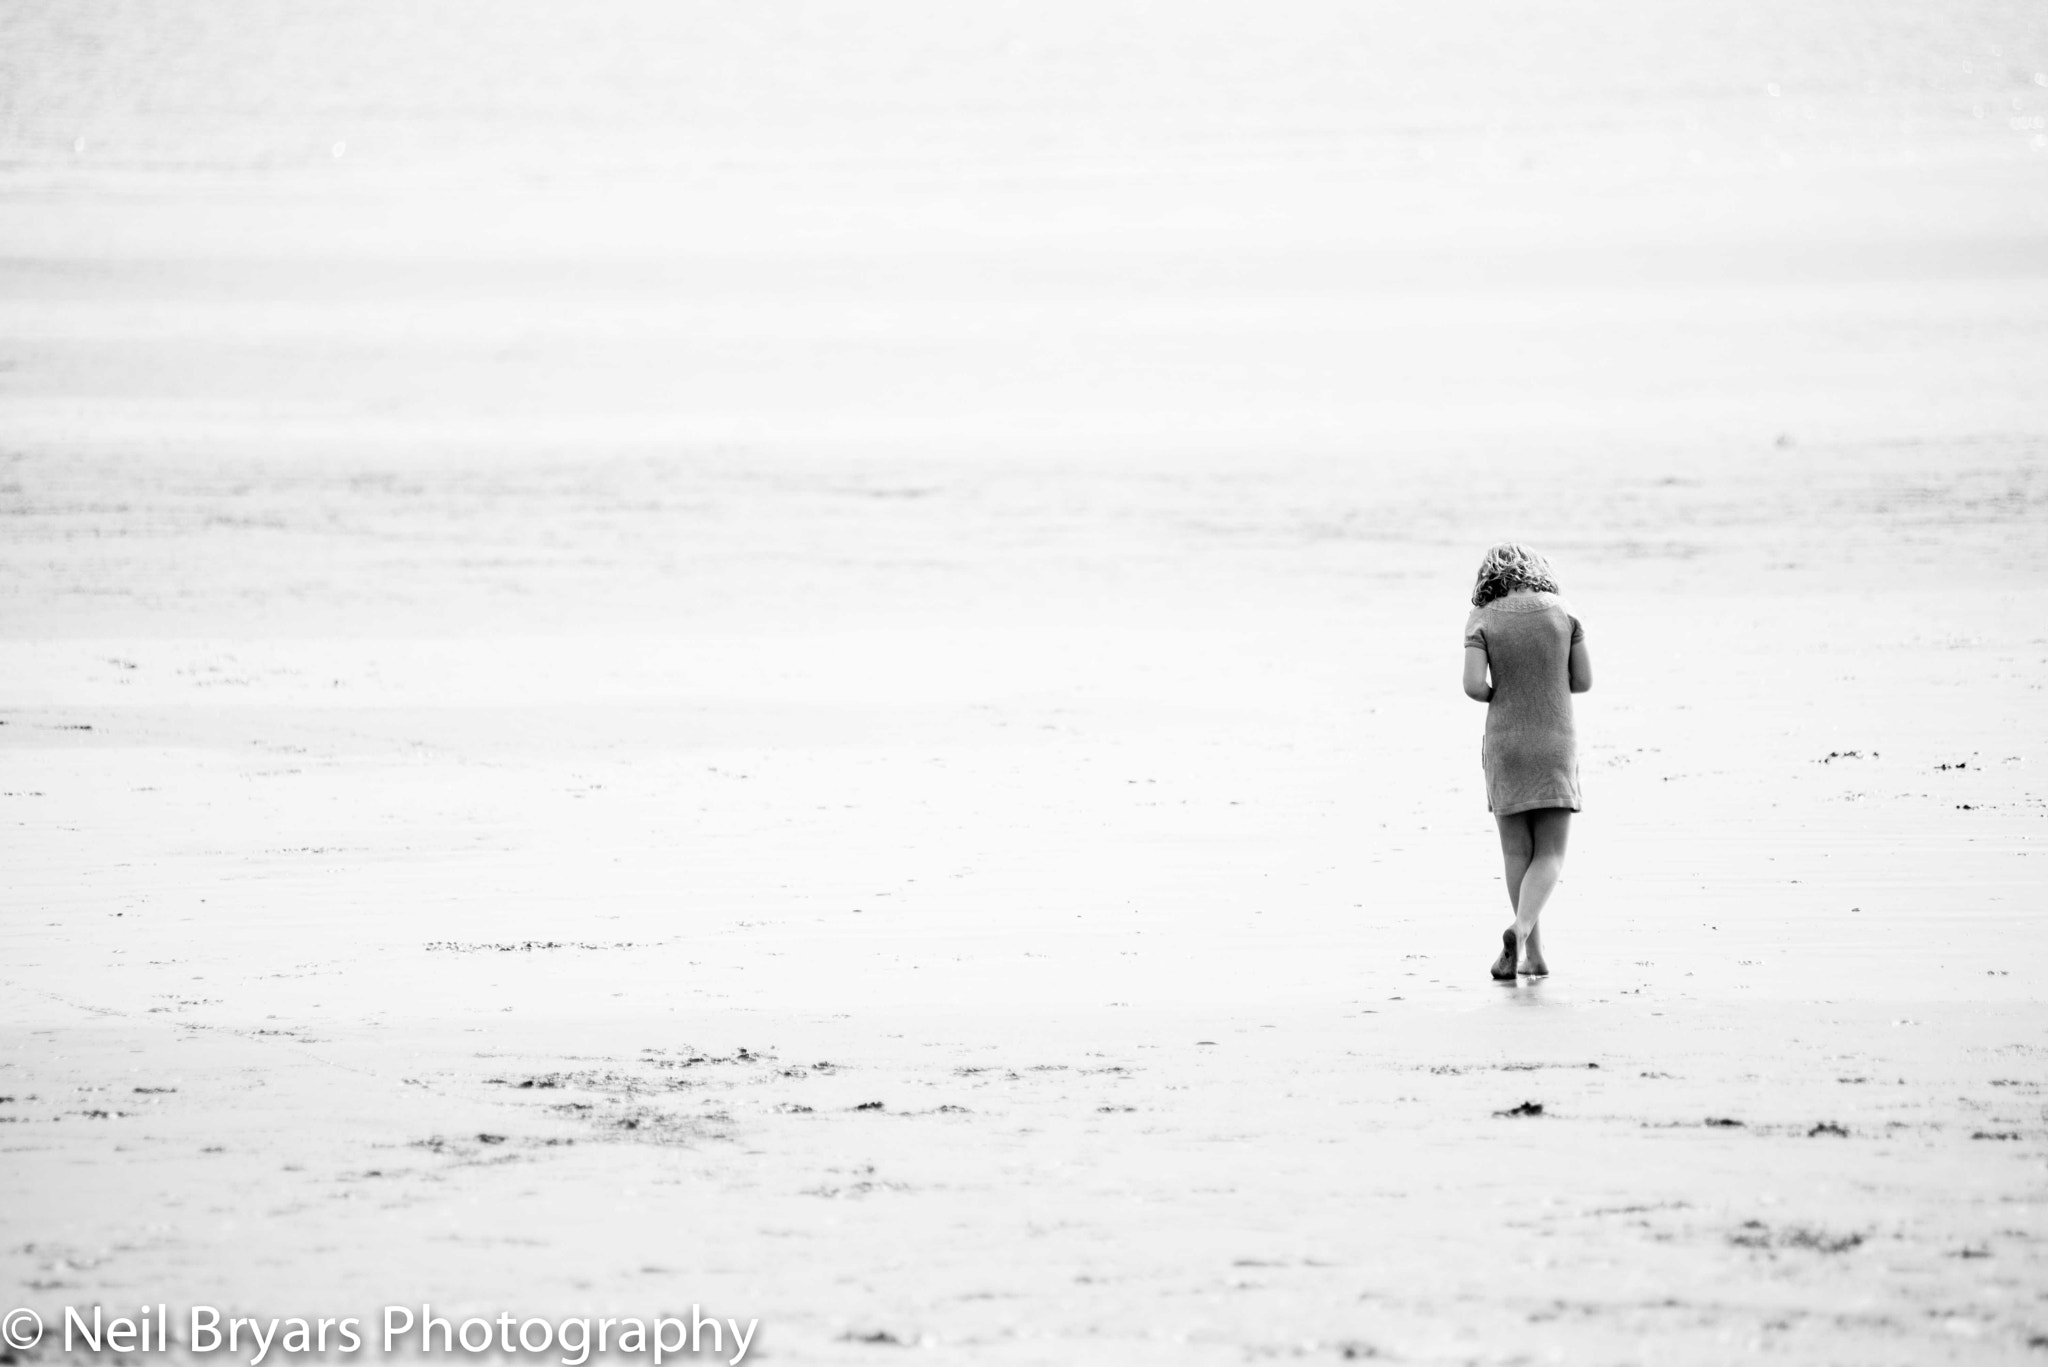 Photograph Off to paddle by Neil Bryars on 500px